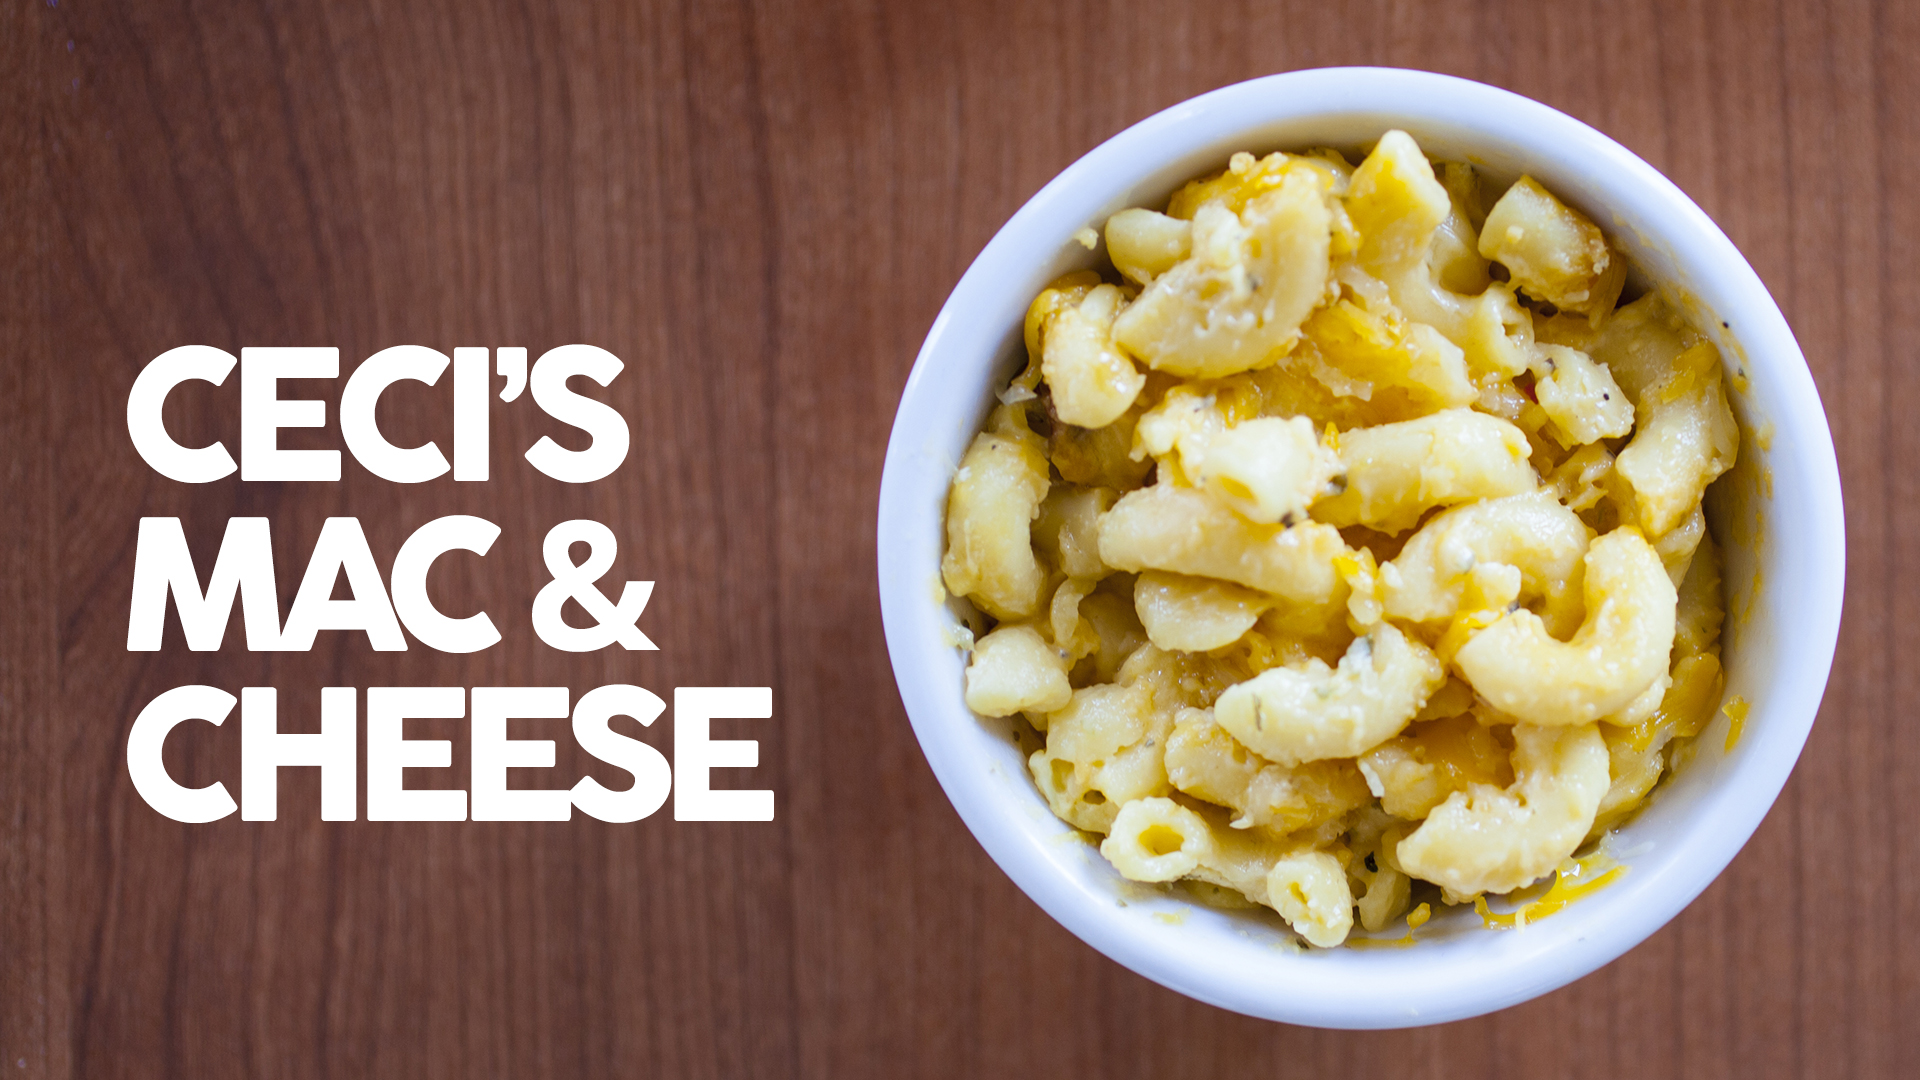 Cheesy Ceci's Mac & Cheese